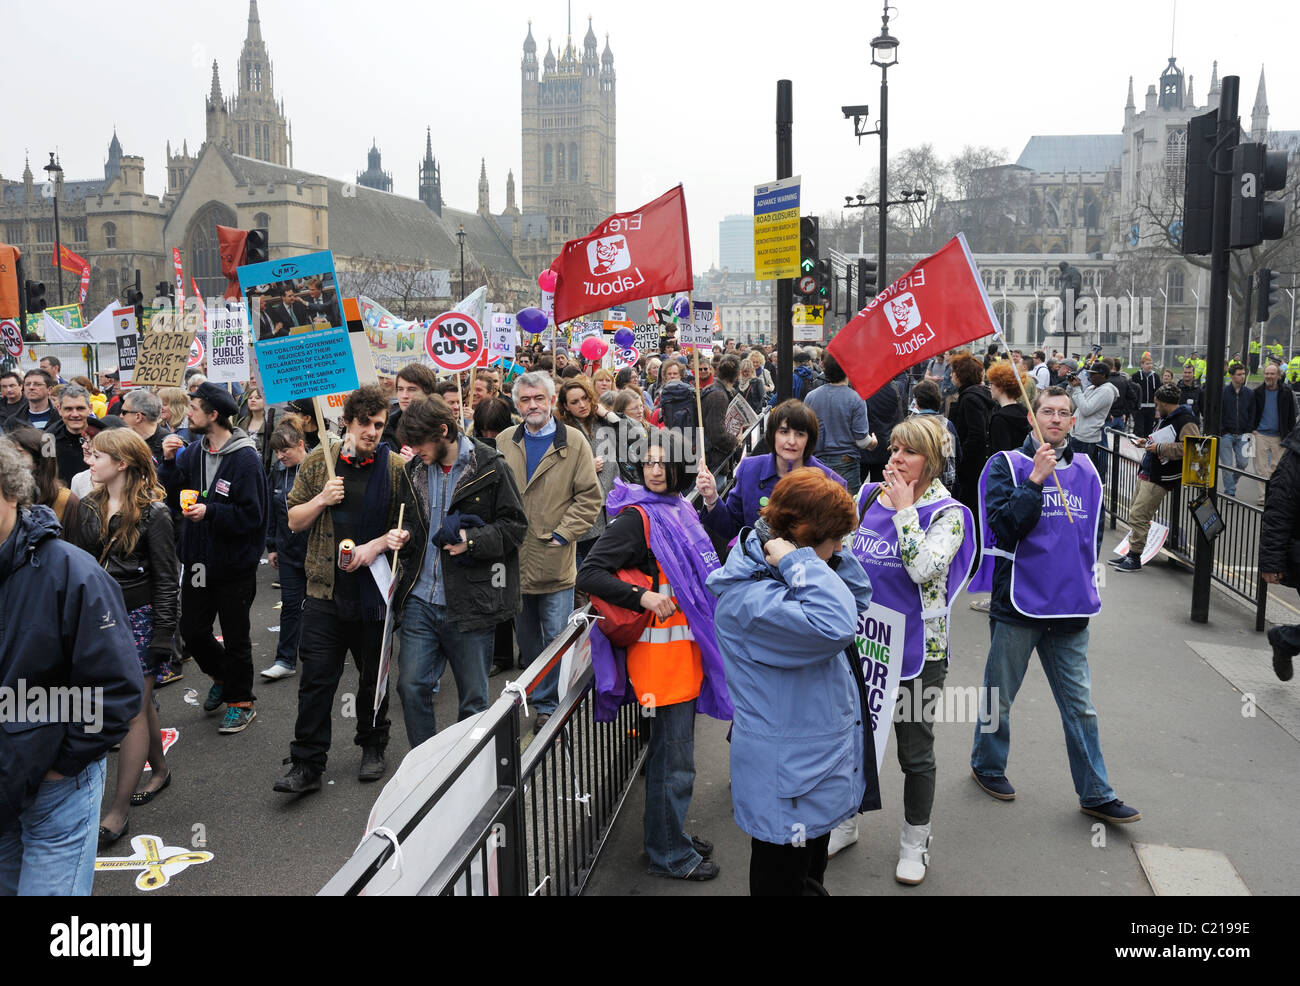 TUC Anti-Spending Cuts March, outside Houses of Parliament, London 26th March 2011 - Stock Image